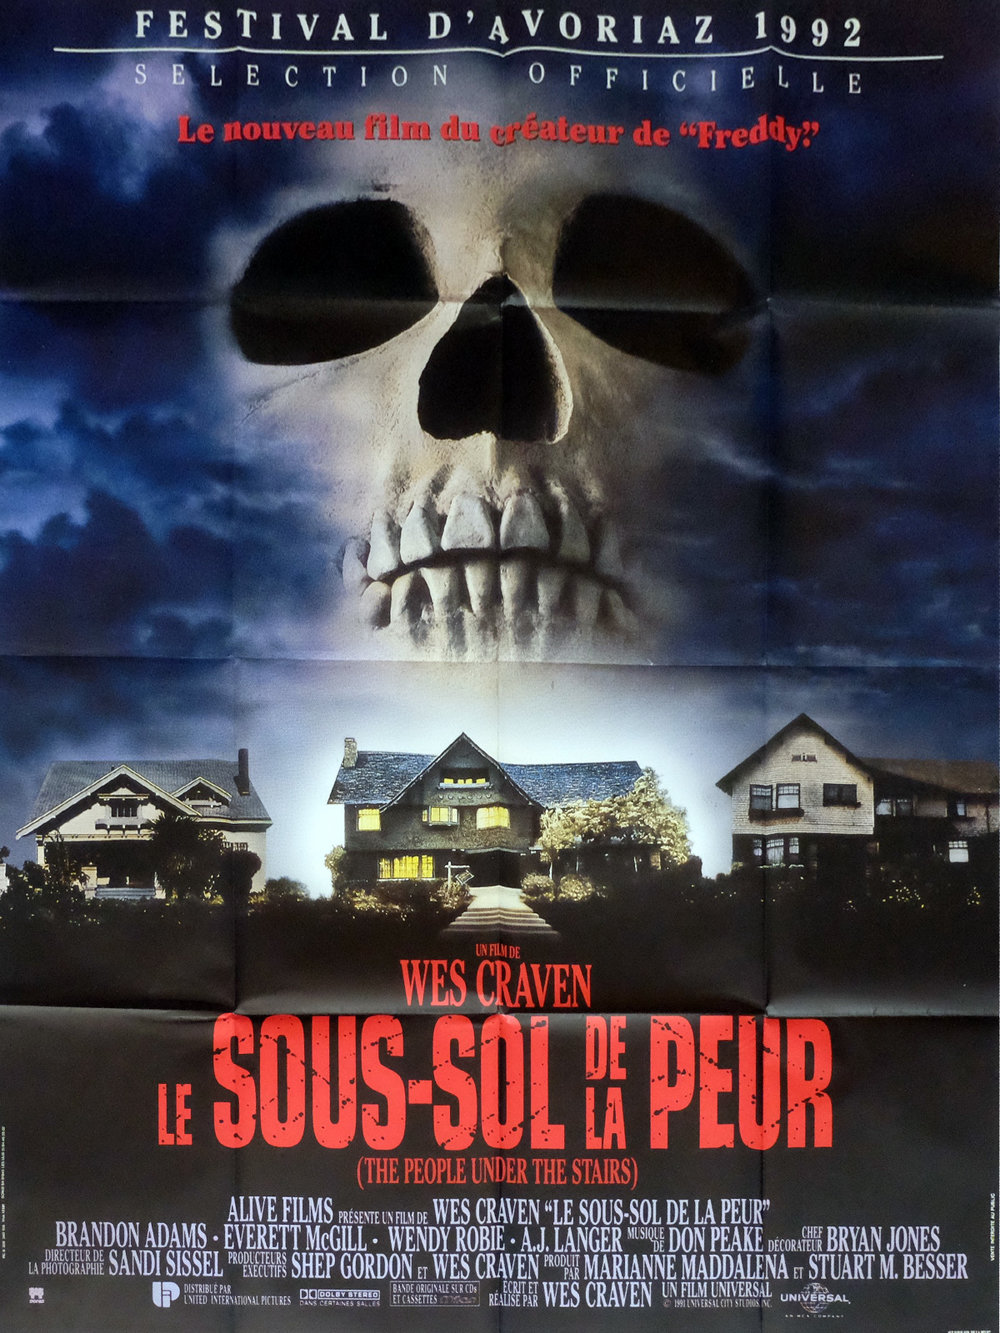 the-people-under-the-stairs-movie-poster-47x63-in-french-1991-wes-craven-everett-mcgill.jpg